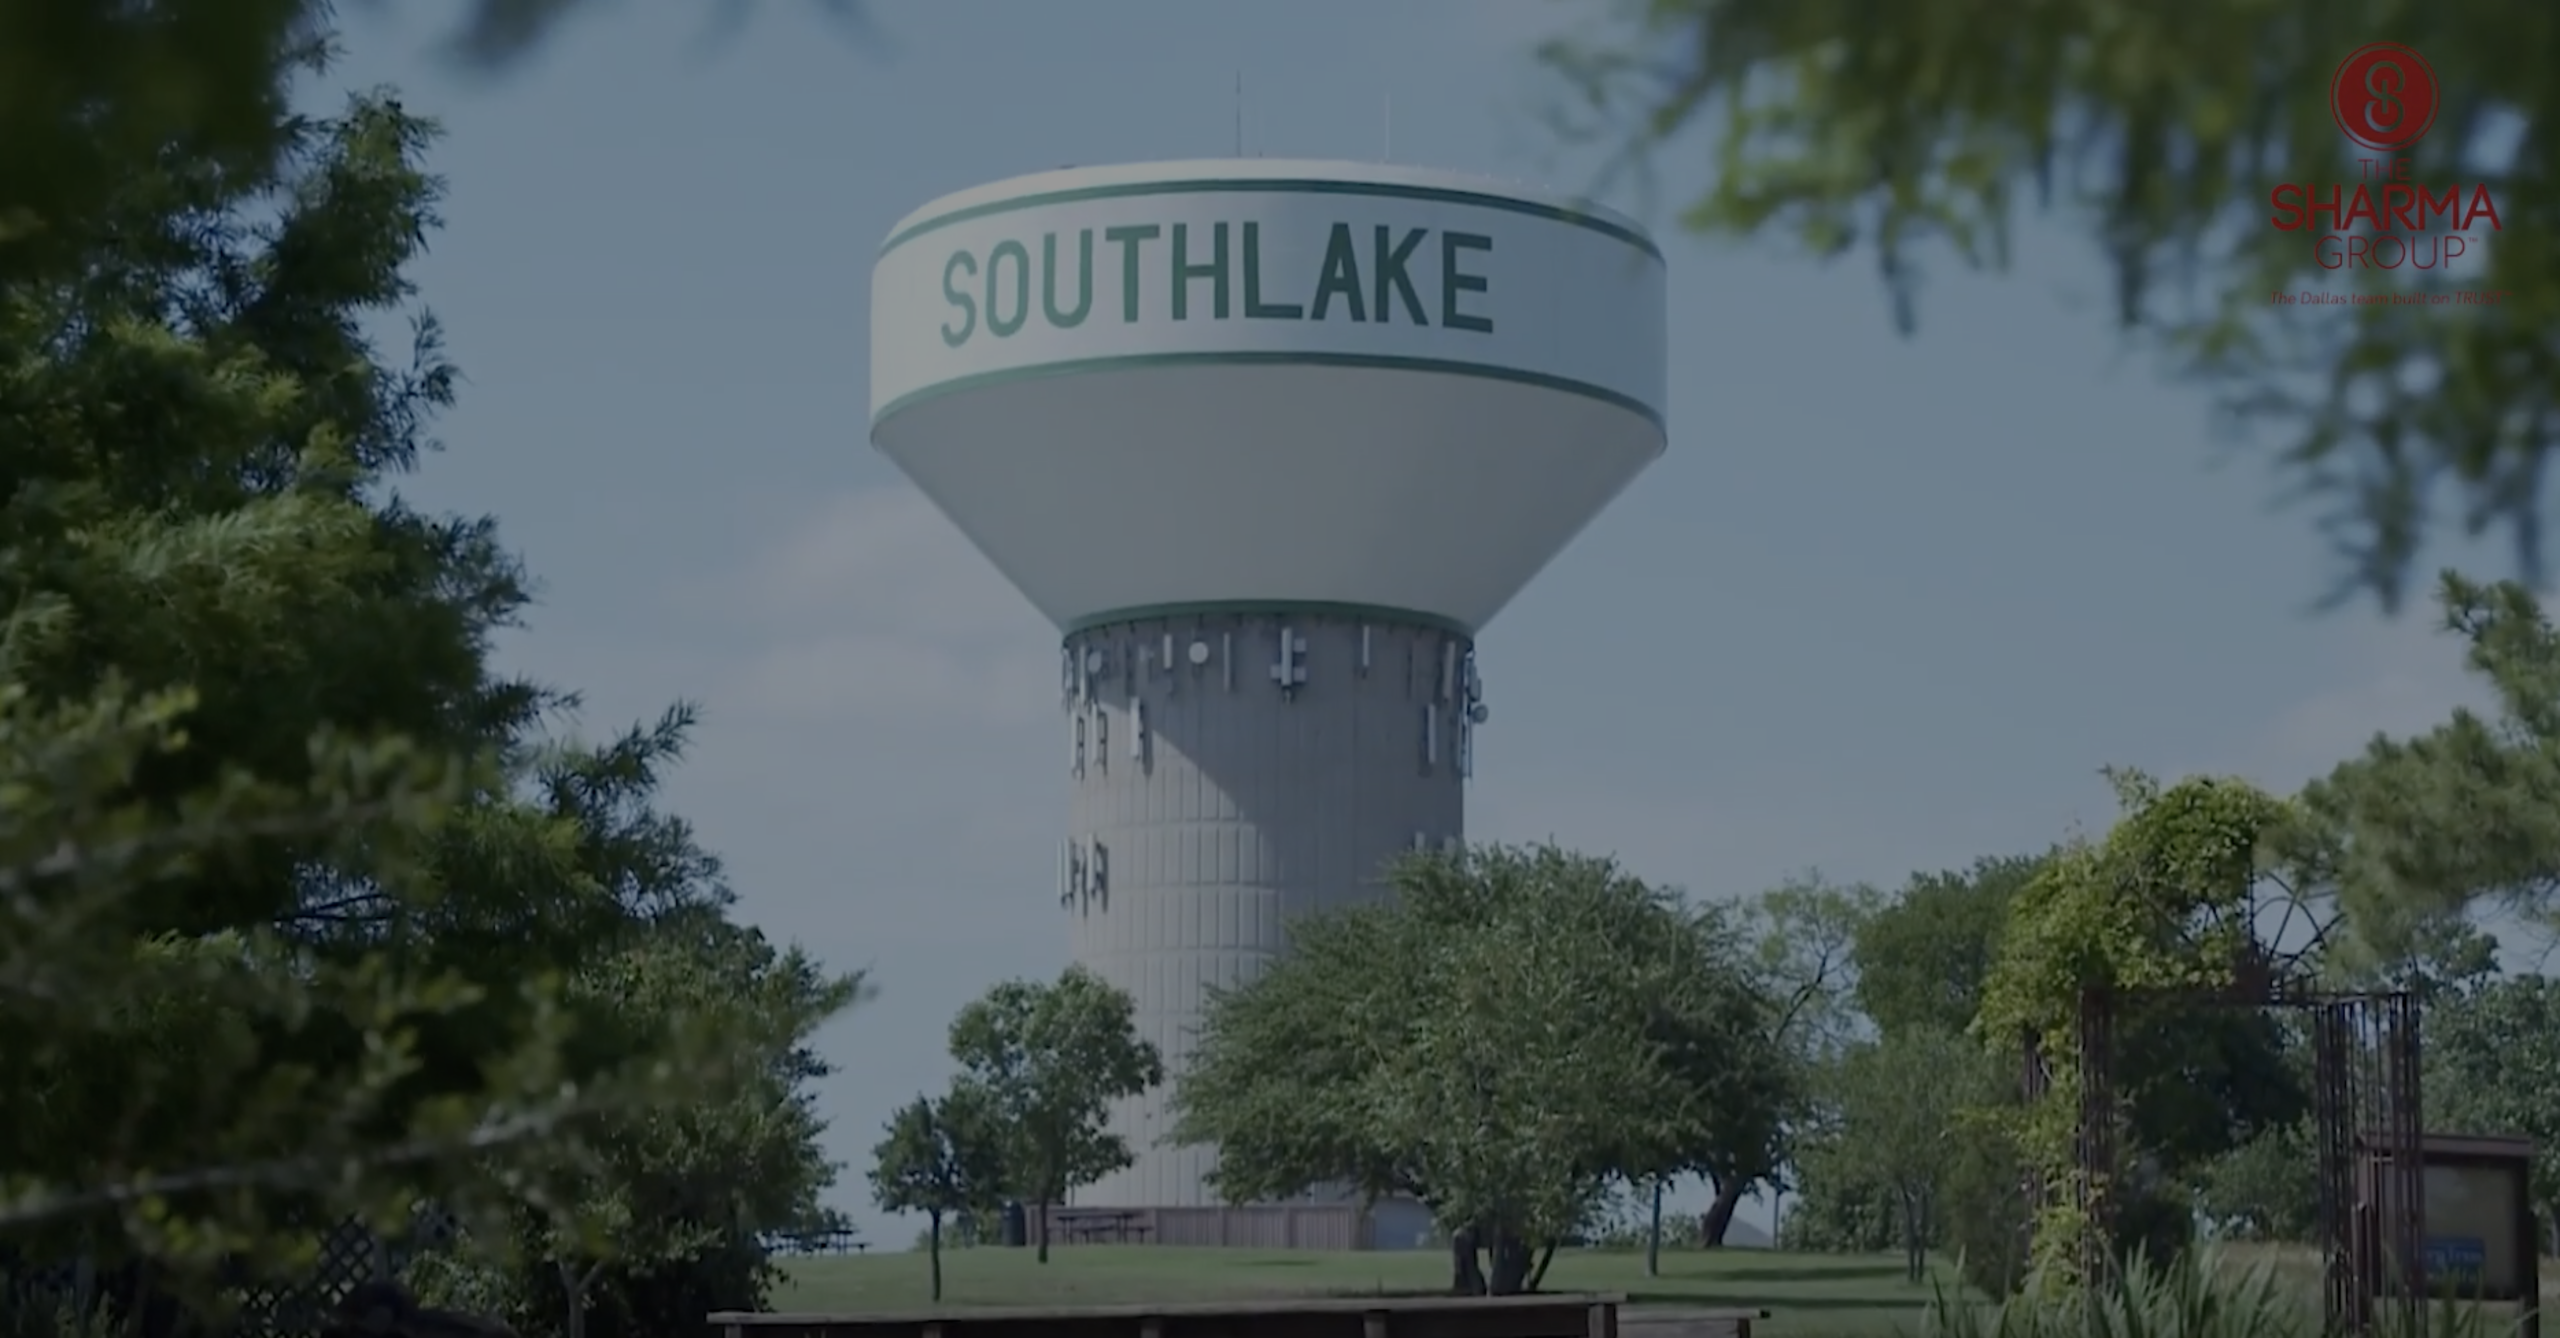 Discover Southlake, Texas | The Sharma Group